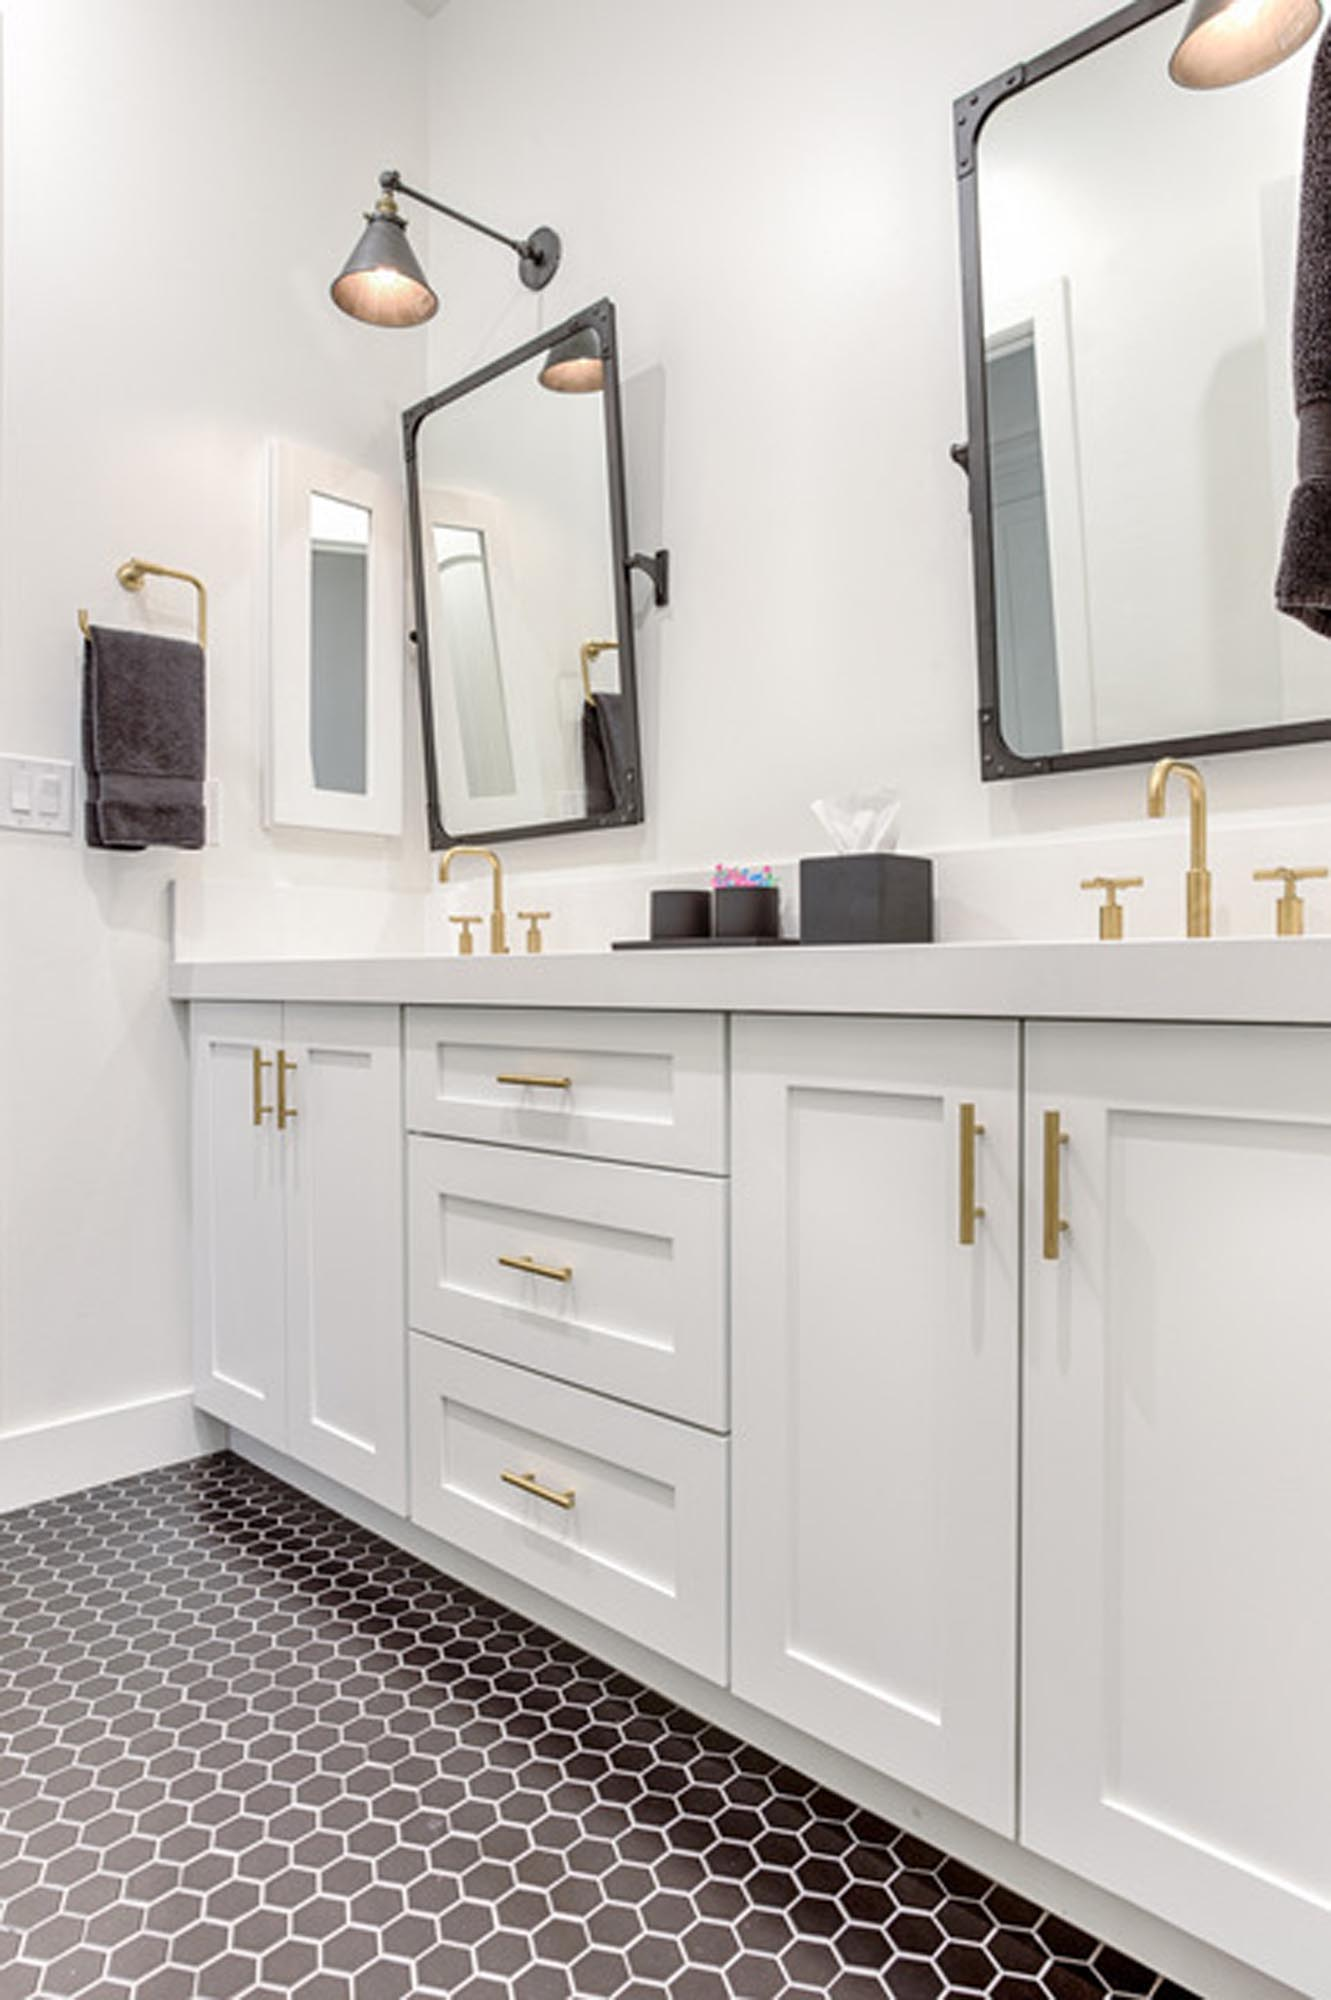 White countertop sink with mirrors and lights